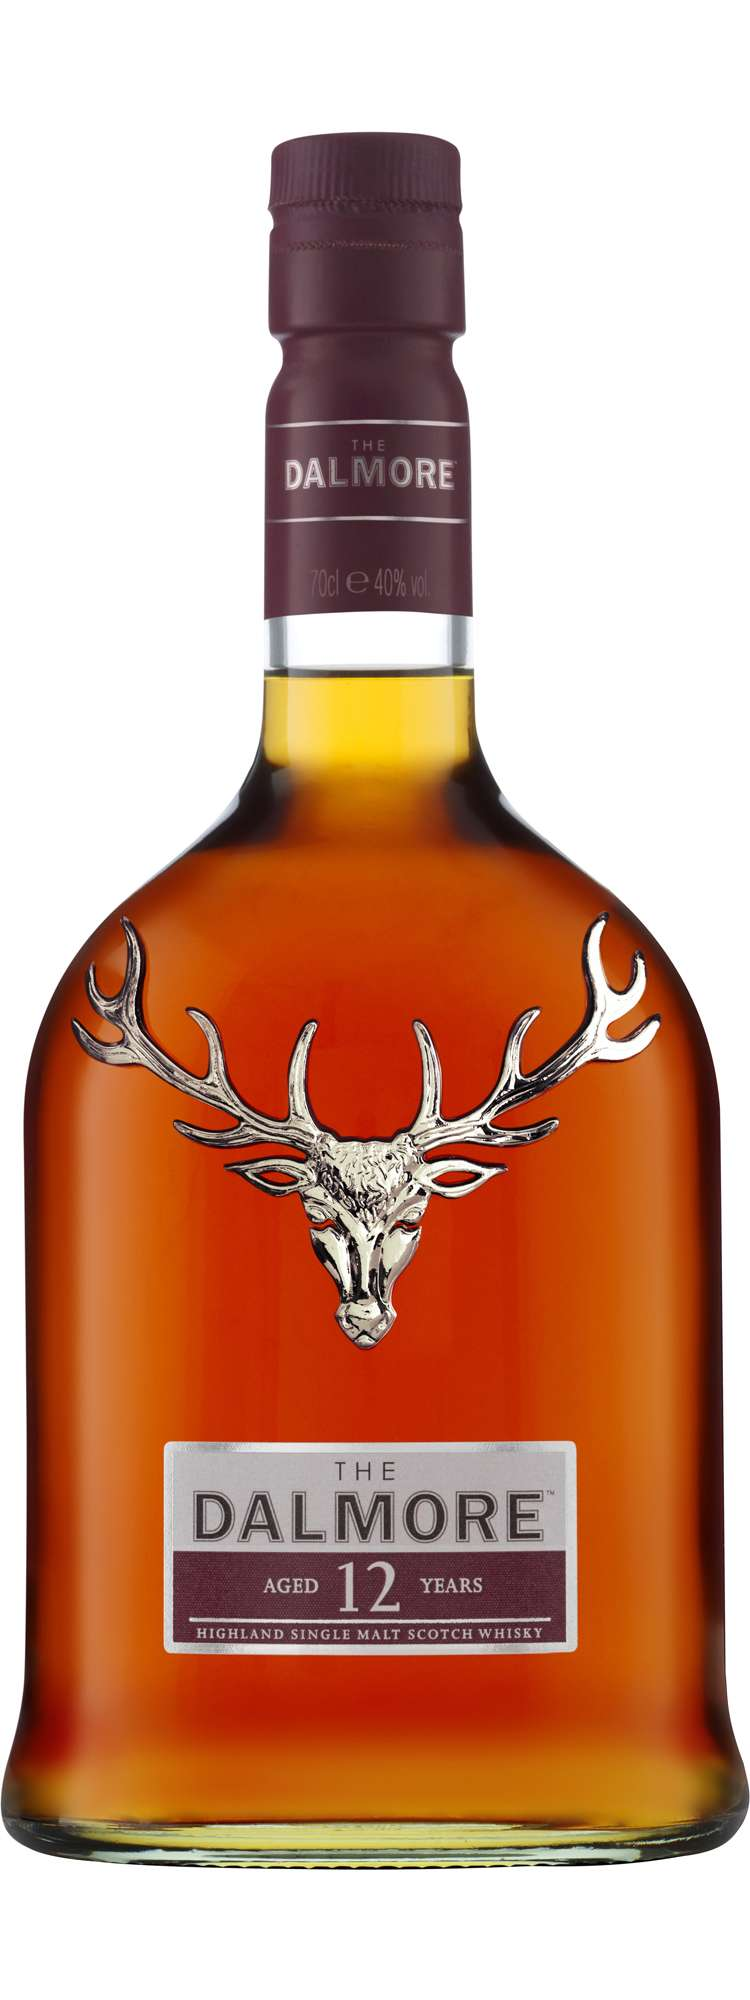 Dalmore 12 Year Old Scotch Whisky